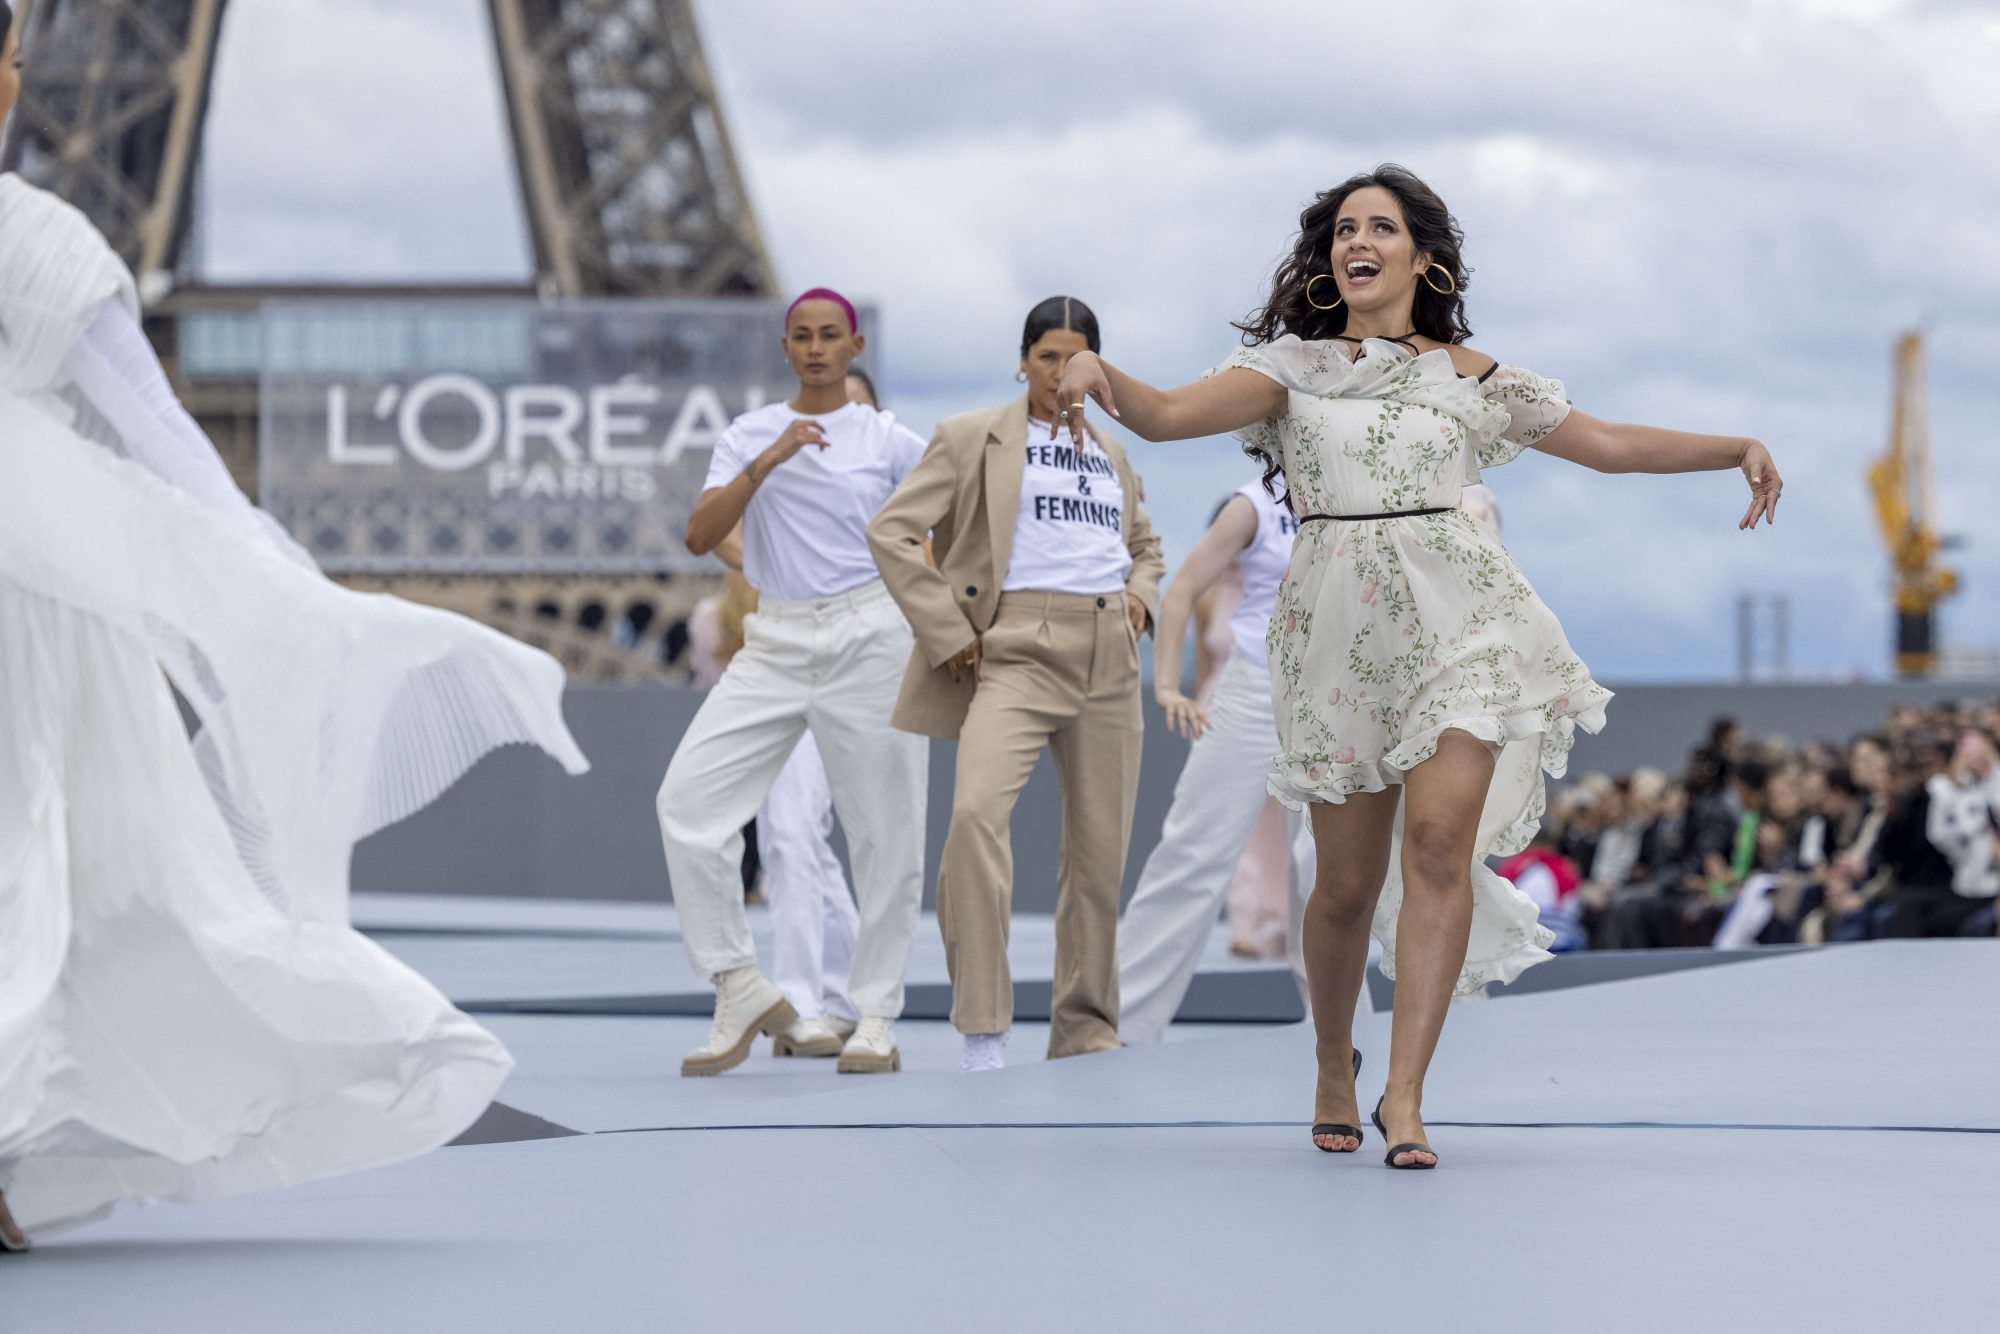 Camila Cabello Wows in a Floral Dress on the L'Oreal Runway at Paris Fashion Week